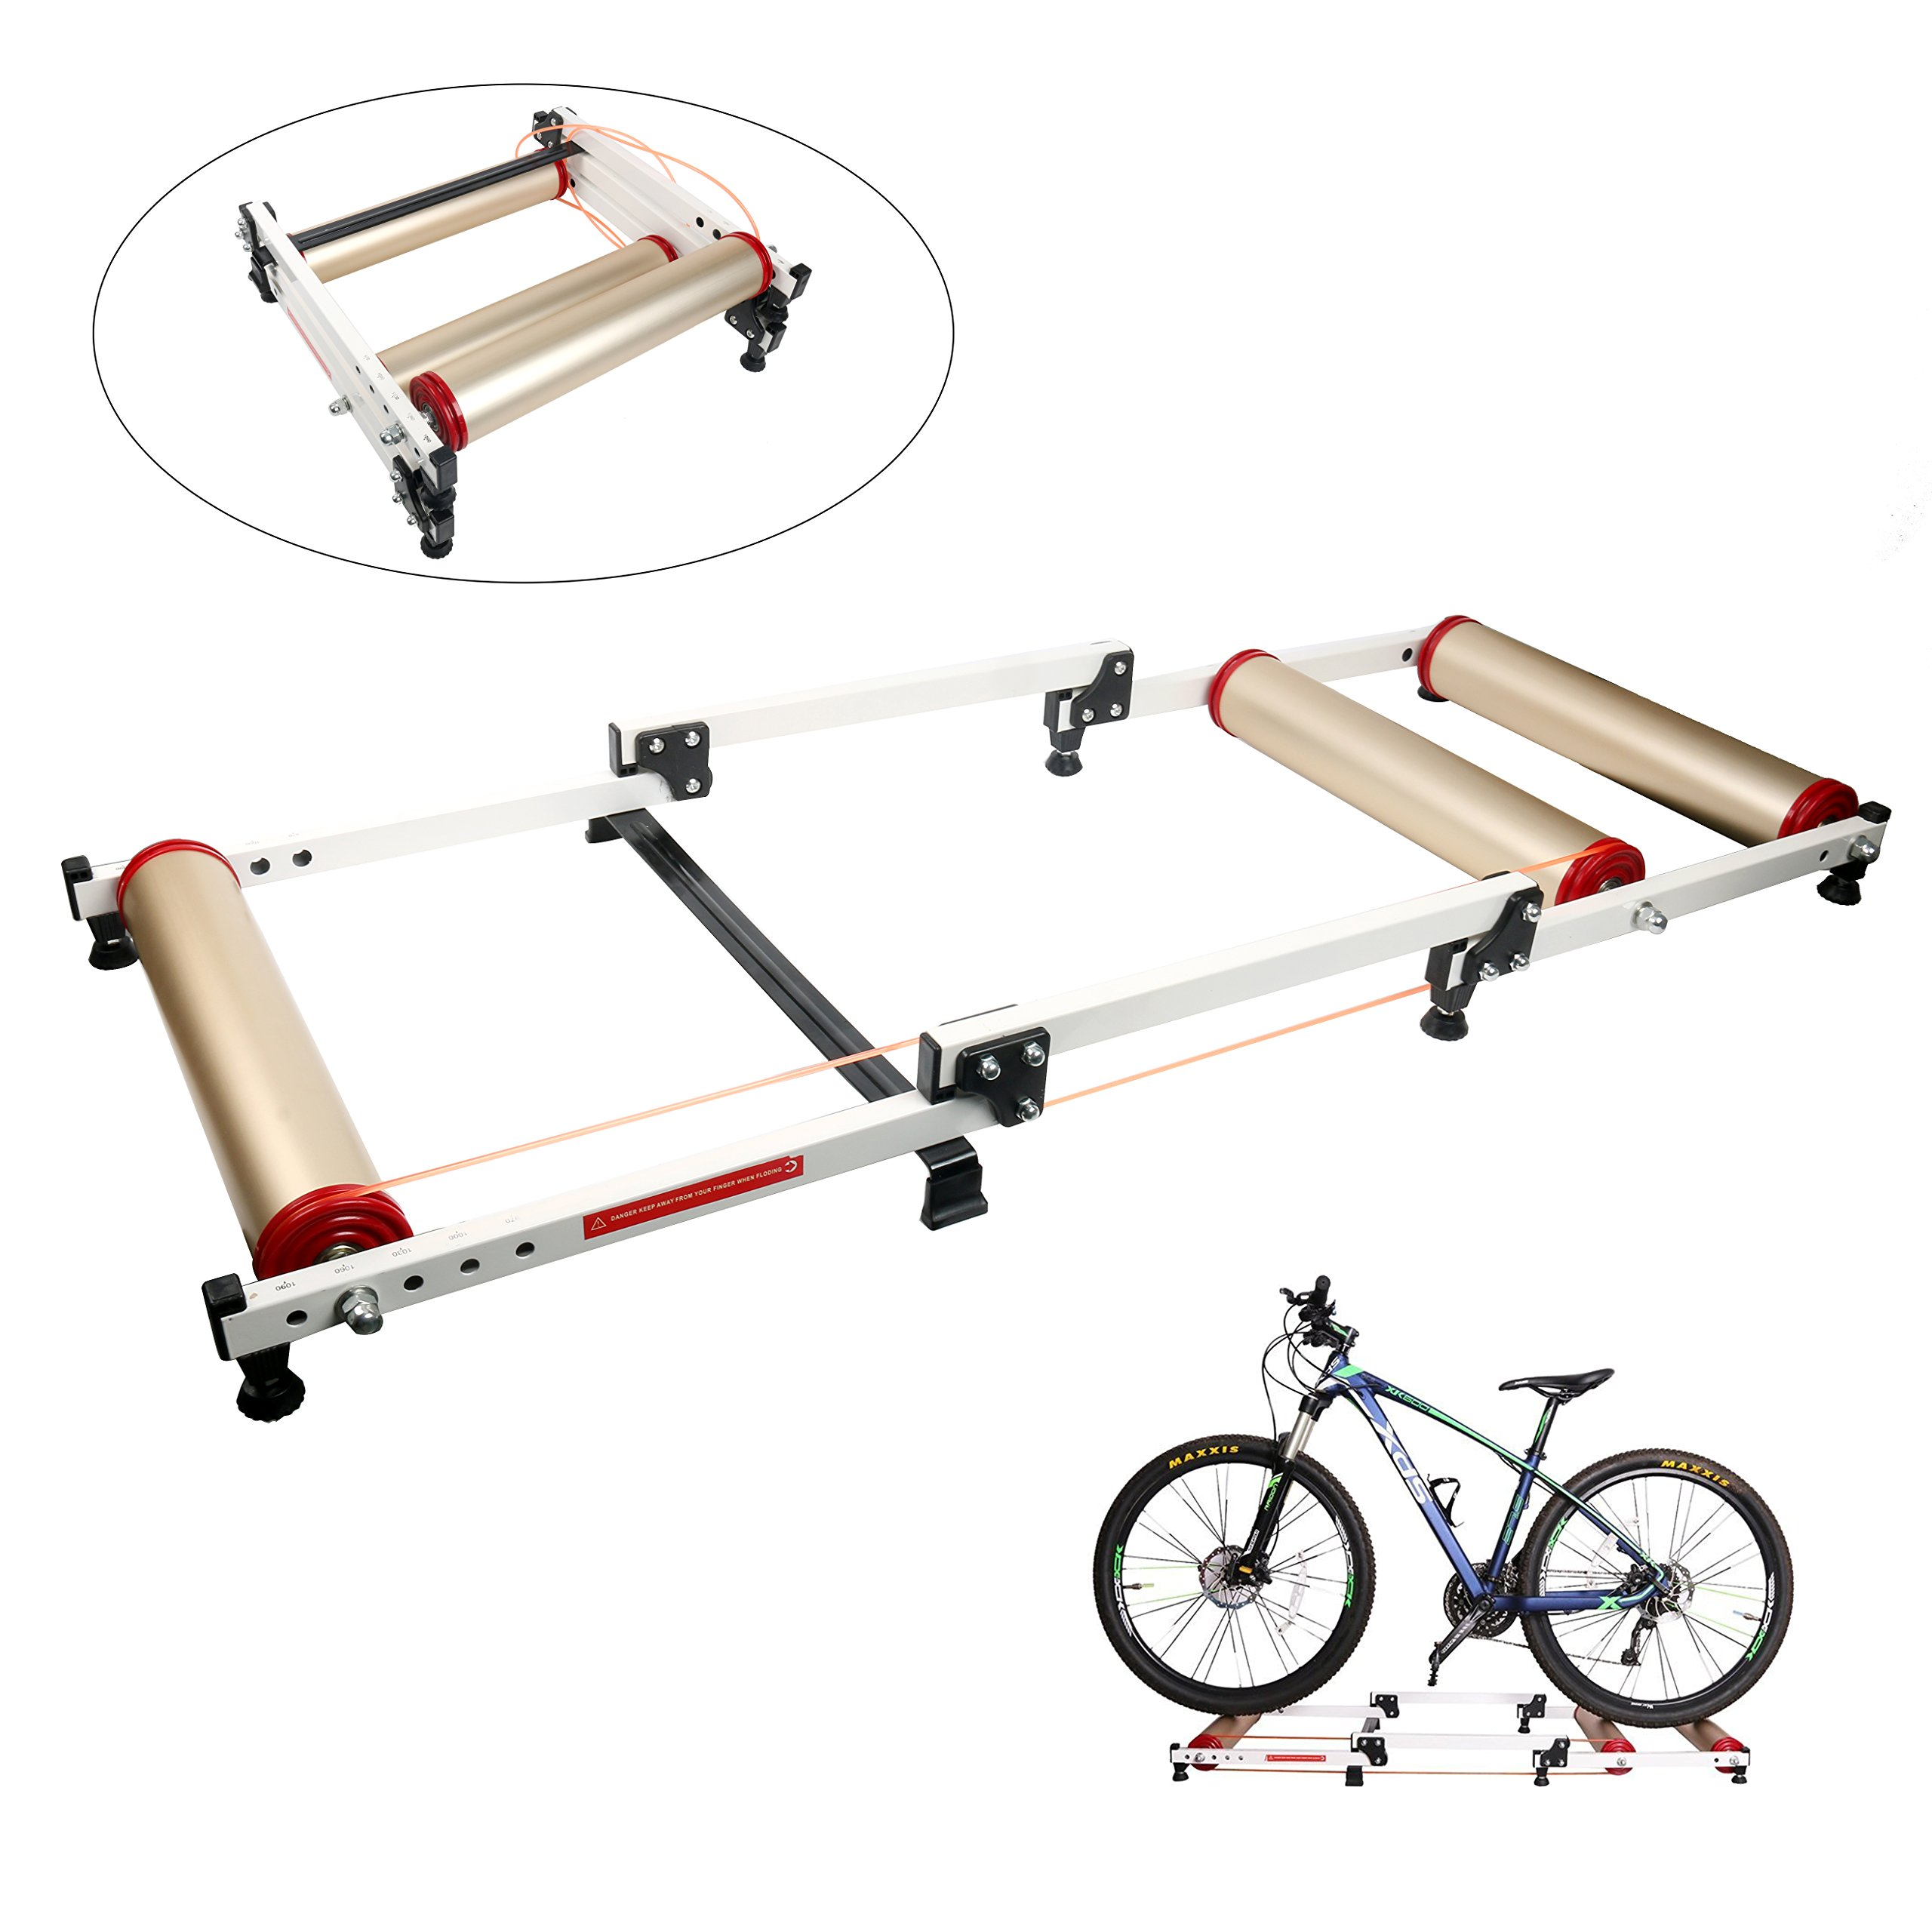 YaeTek Foldable Indoor Bike Rollers for Exercise, Bike Resistance Trainers Parabolic roller drum profile